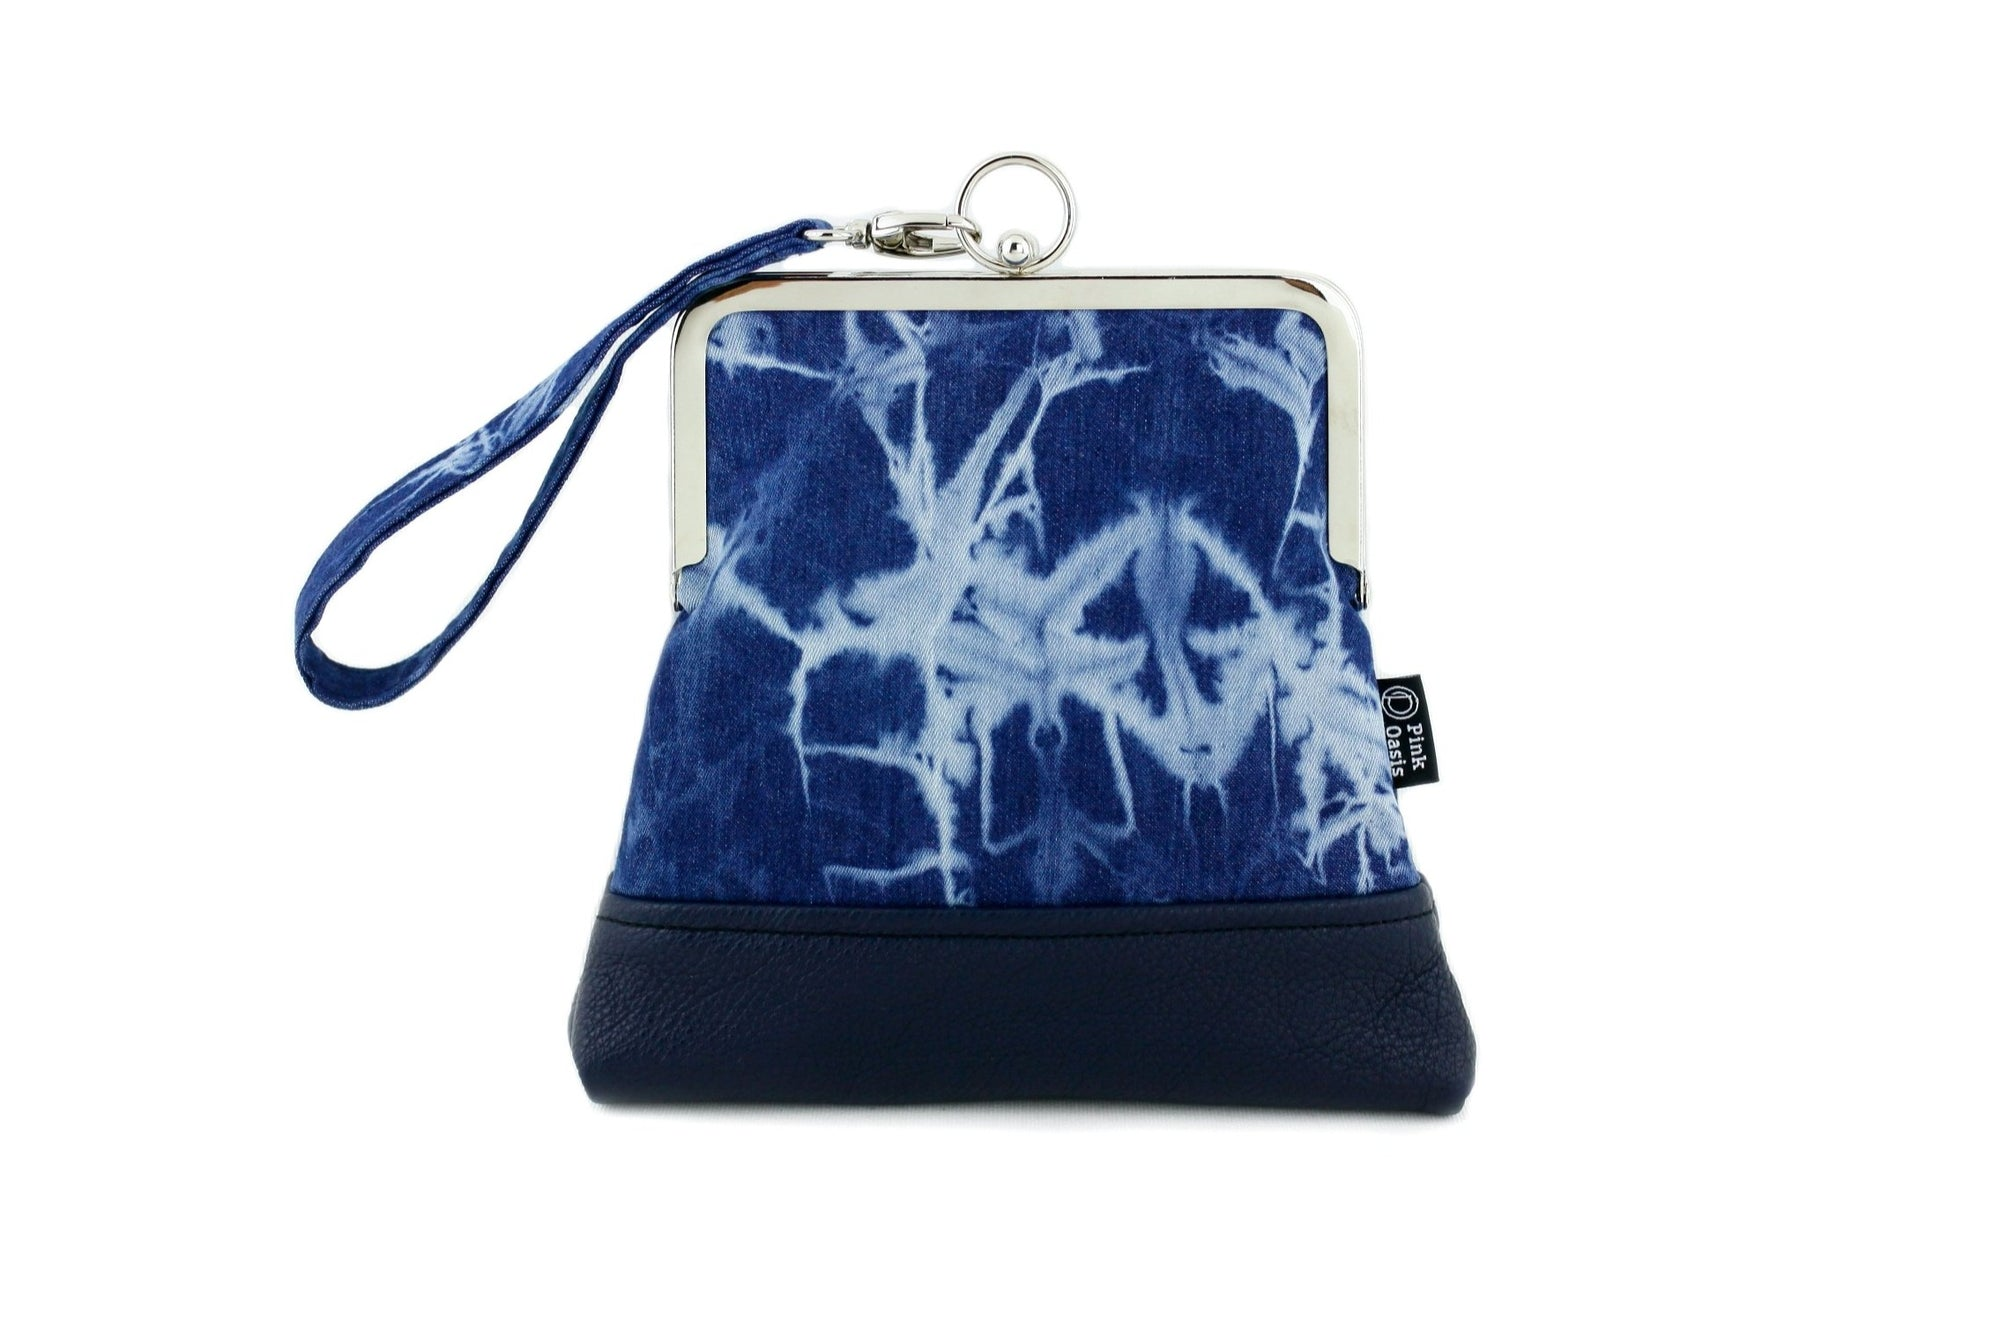 Shibori Denim Wristlet with Chain Strap | PINKOASIS